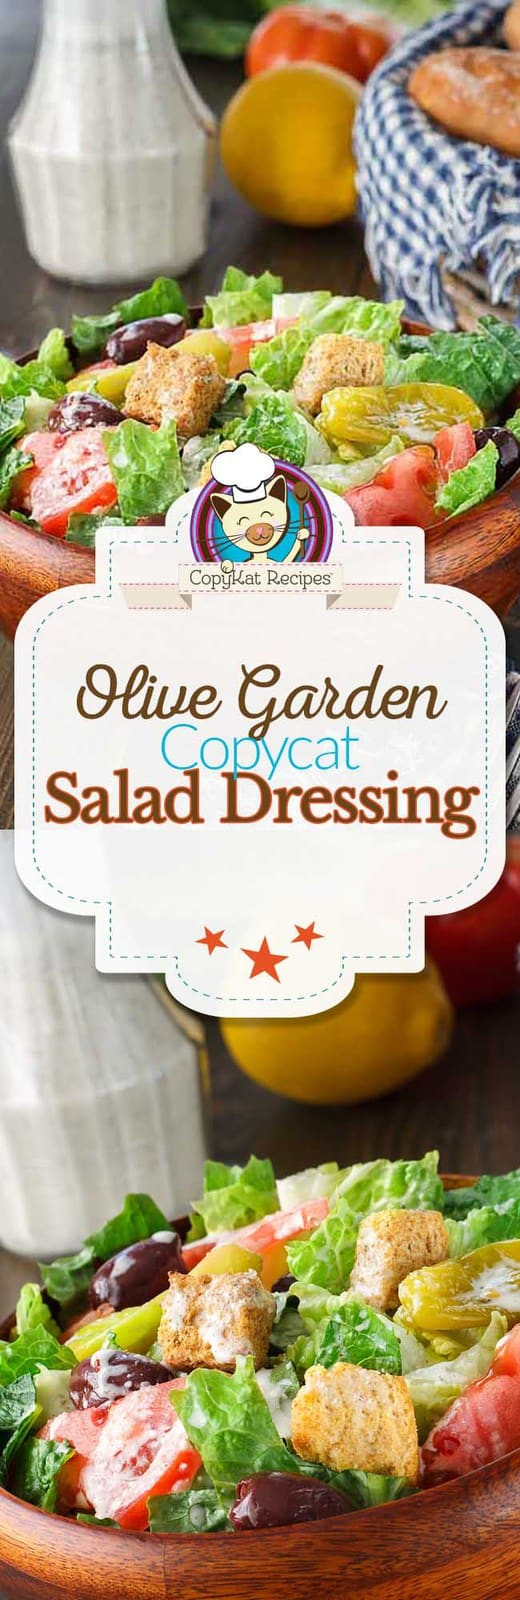 Recreate your own copycat version of the Olive Garden Salad dressing at home with this recipe. #copycat #olivegarden #salad #saladdressing